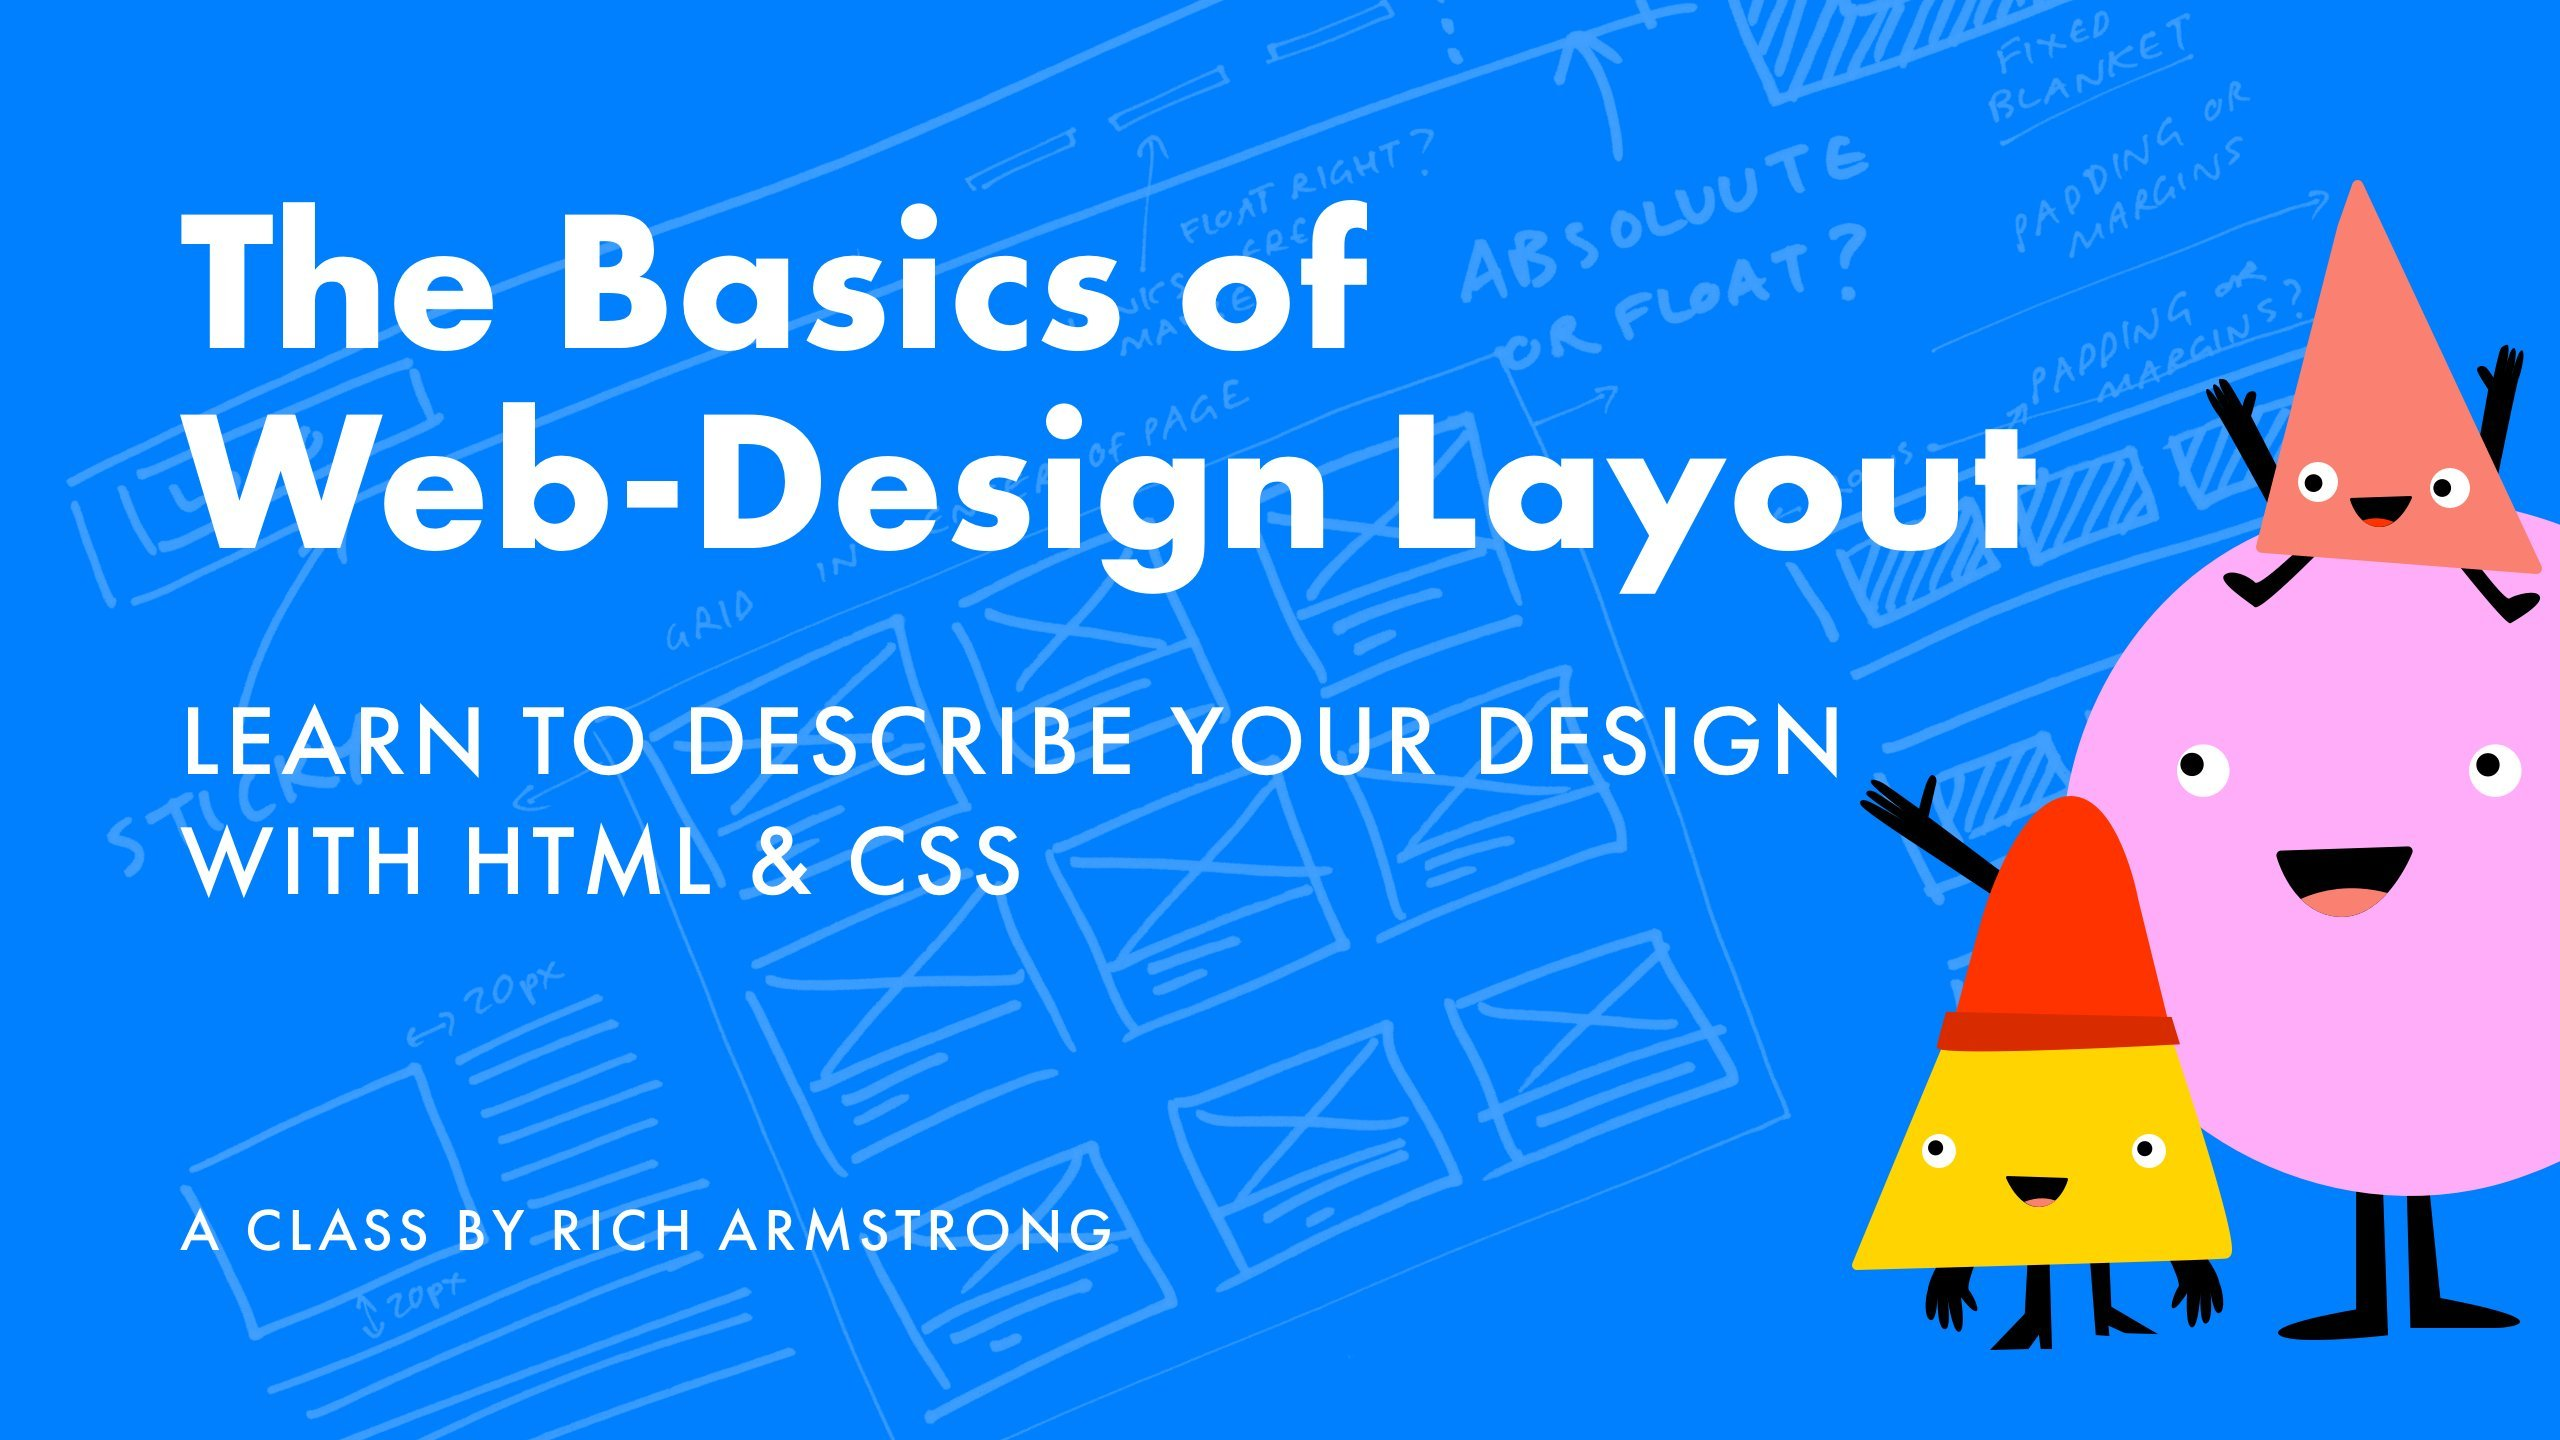 The basics of web design layout learn how to describe - How to learn web designing at home free ...